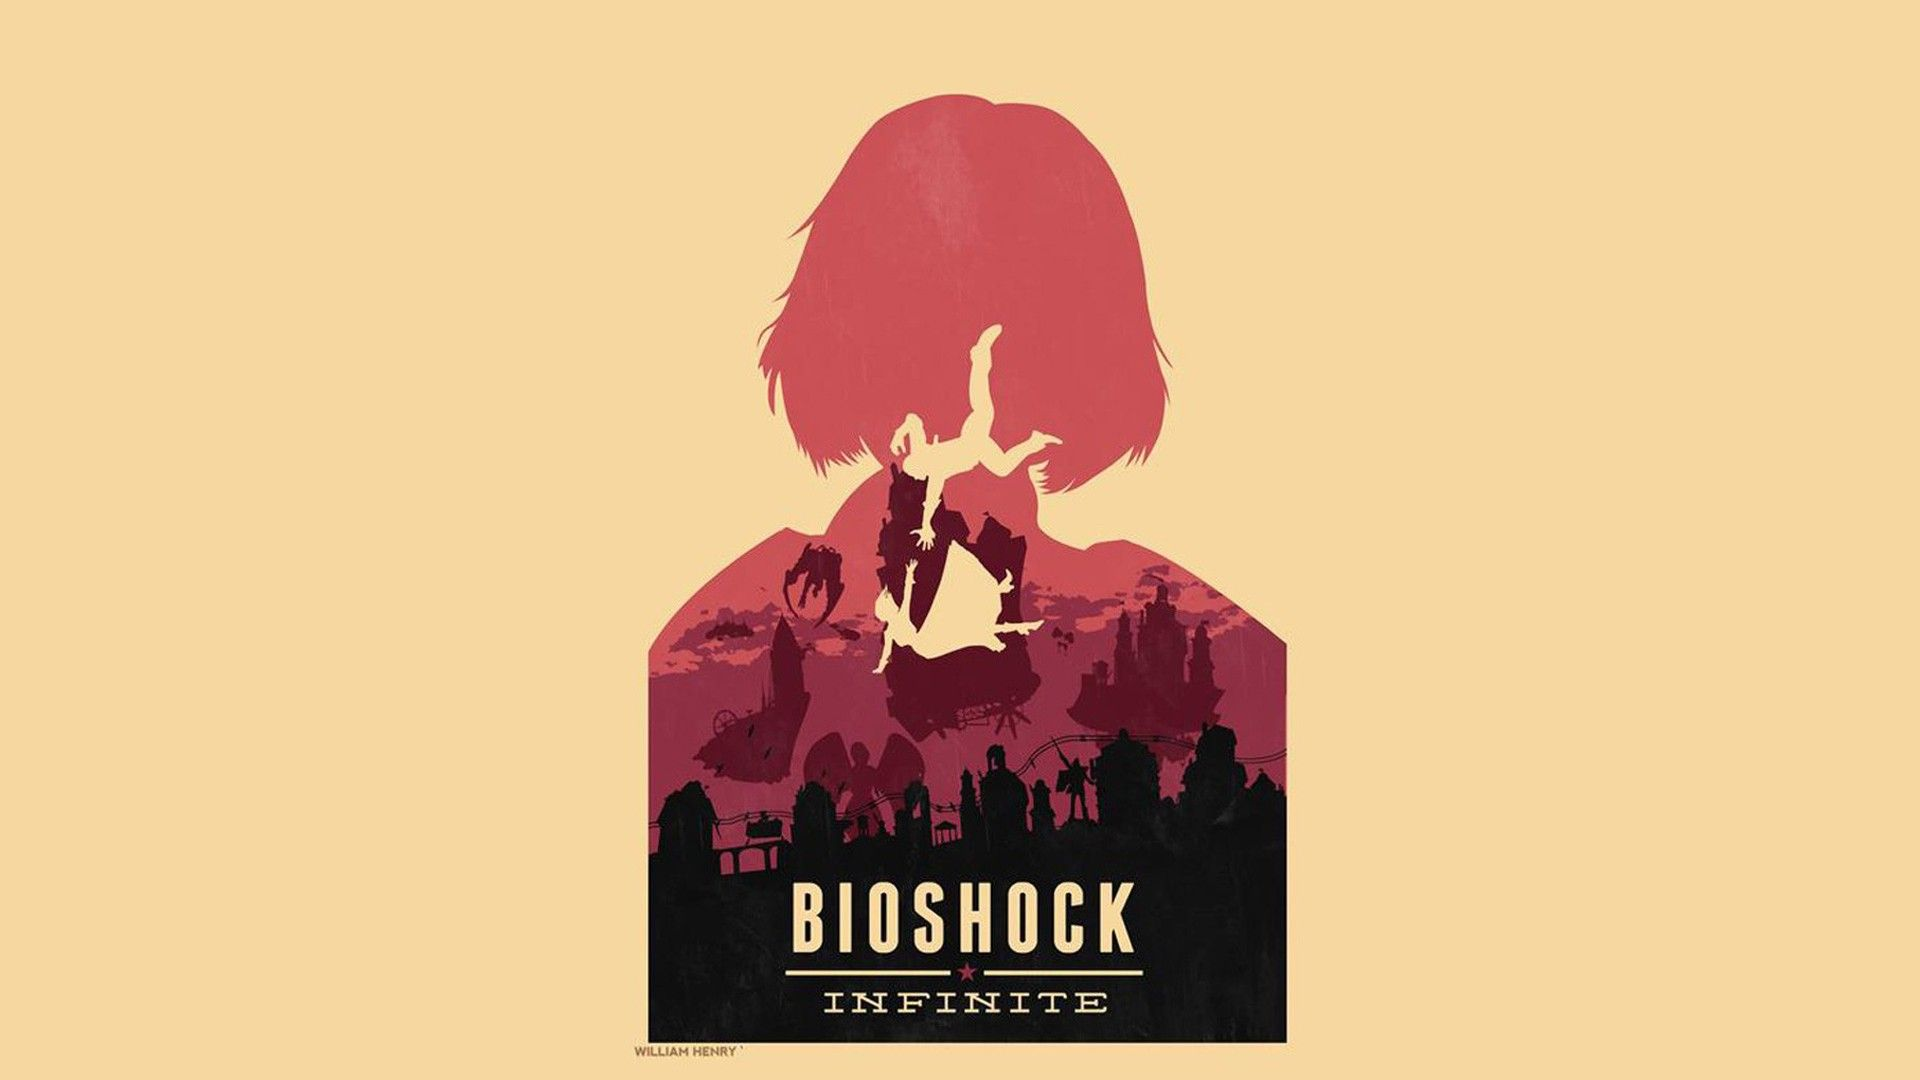 Bioshock Infinite Wallpapers Full HD H1QV2YX   4USkY 1920x1080